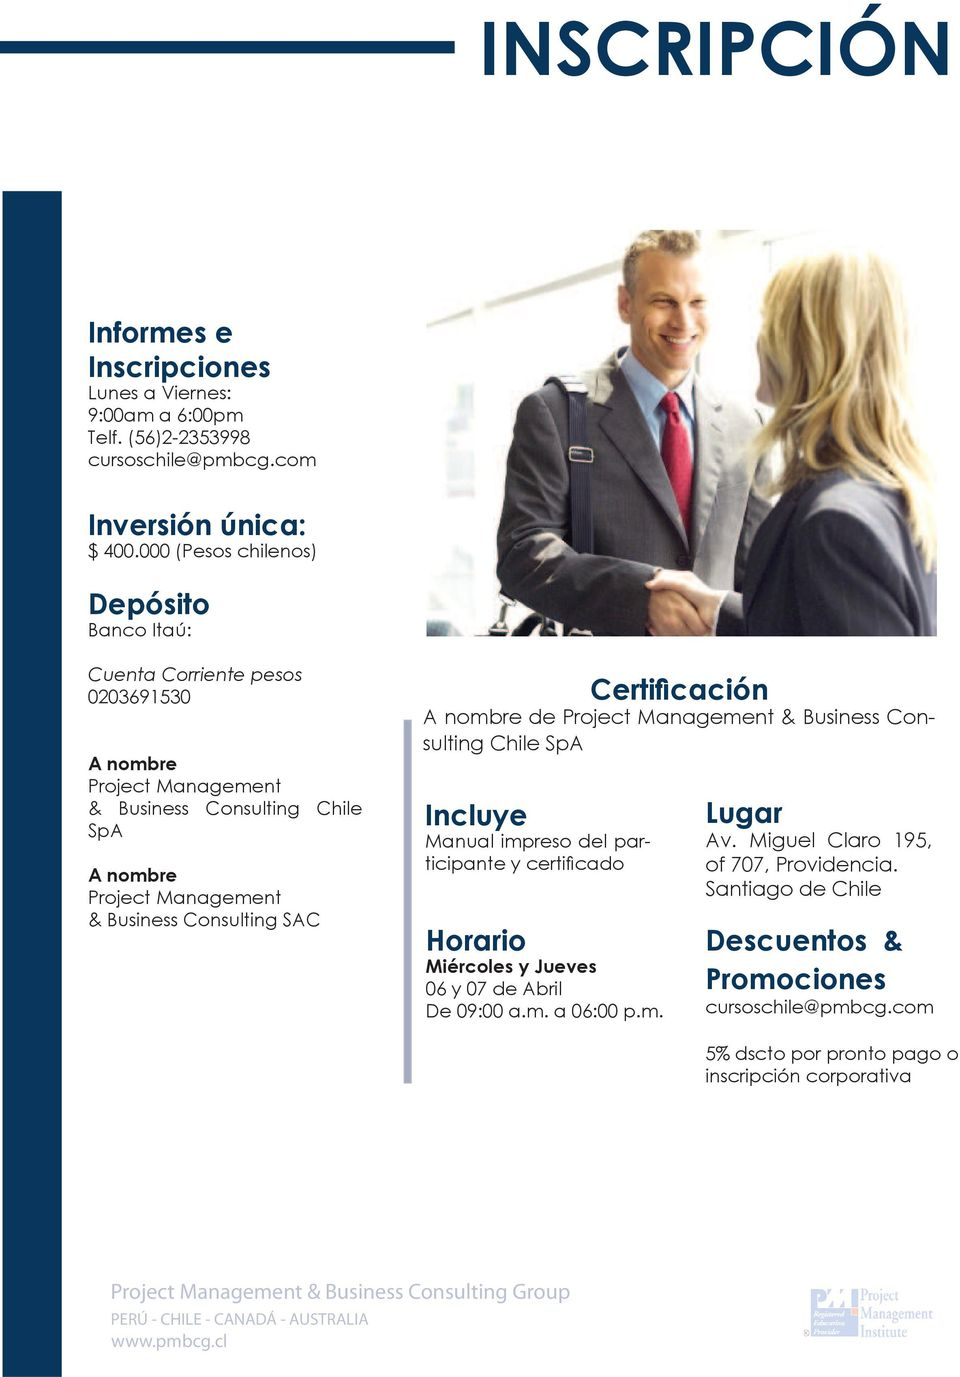 Business Consulting SAC Certifi cación A nombre de Project Management & Business Consulting Chile SpA Incluye Manual impreso del participante y certifi cado Horario